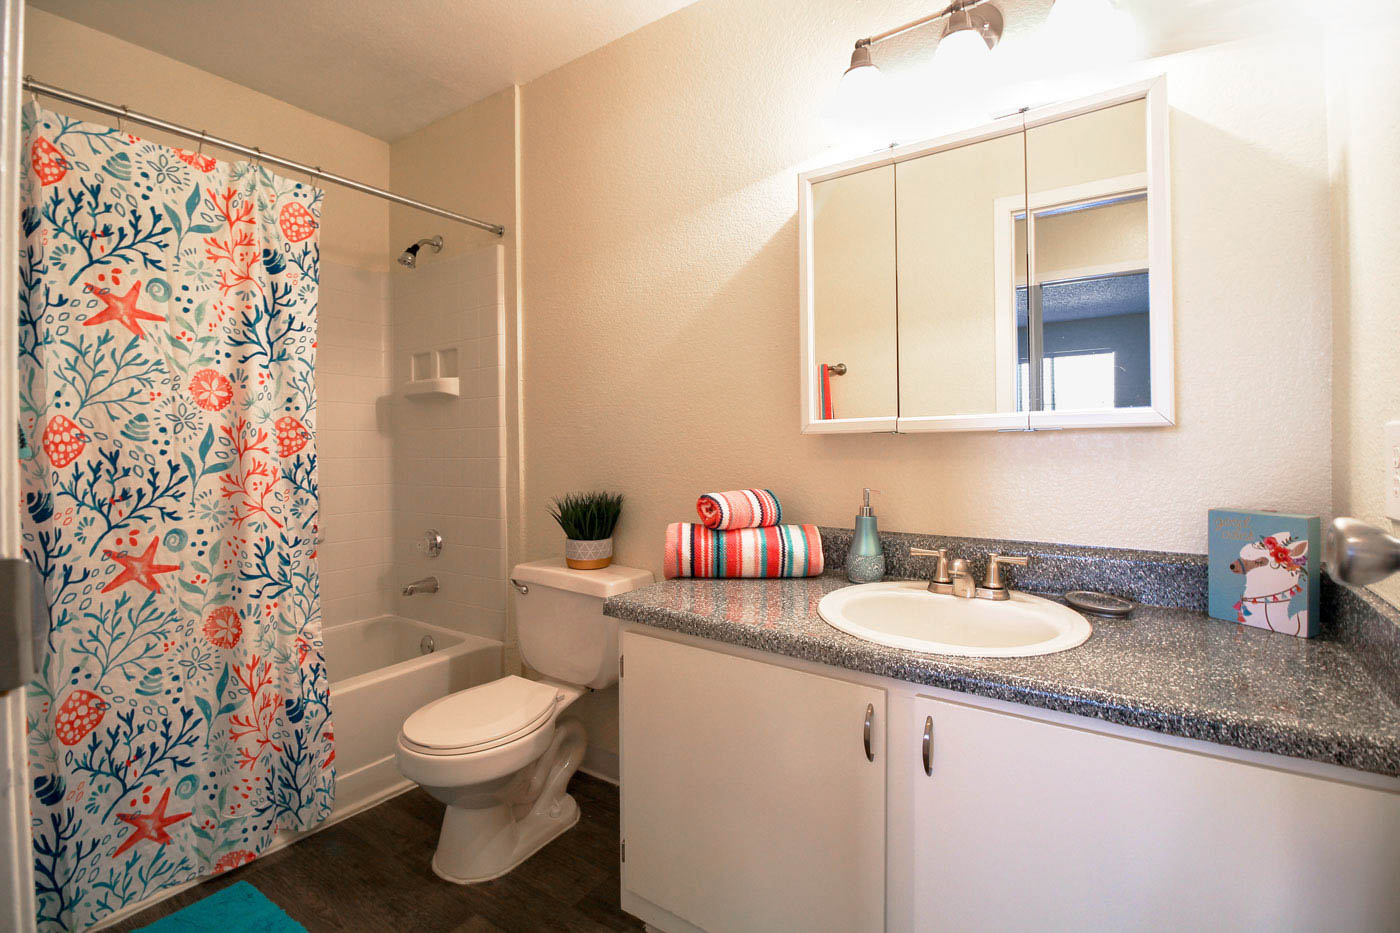 Full bathroom with colorful orange and blue decor.